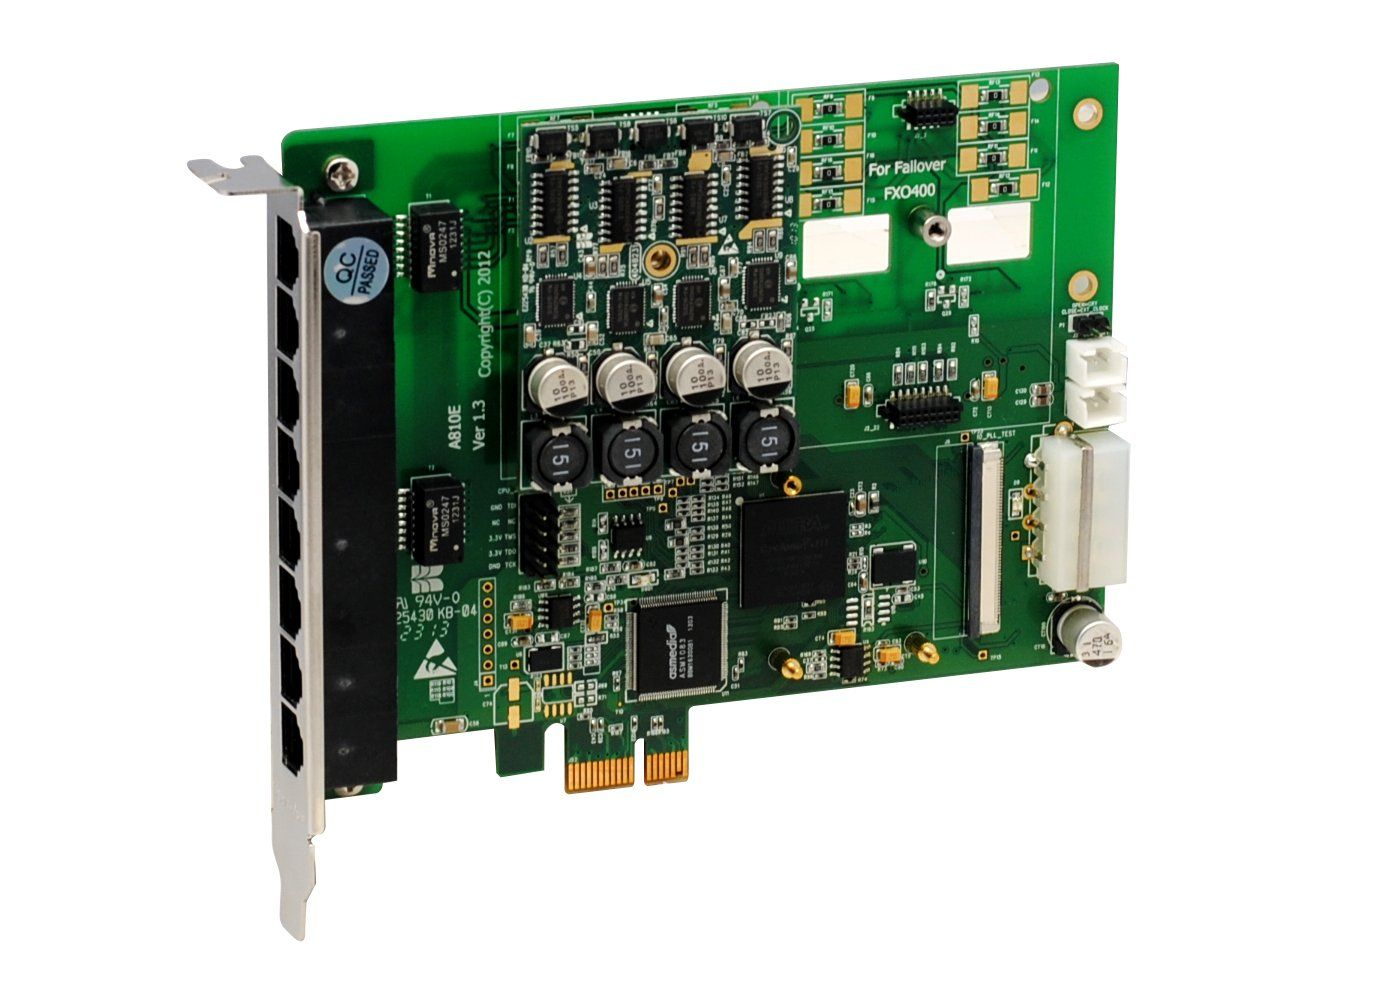 Openvox A810ef10 8 Port Analog Pci E Card Base Board 1 Fxs400 0 Caller Id Circuit Fxo400 With Failover And Call Waiting Adjustable Interrupt Ro